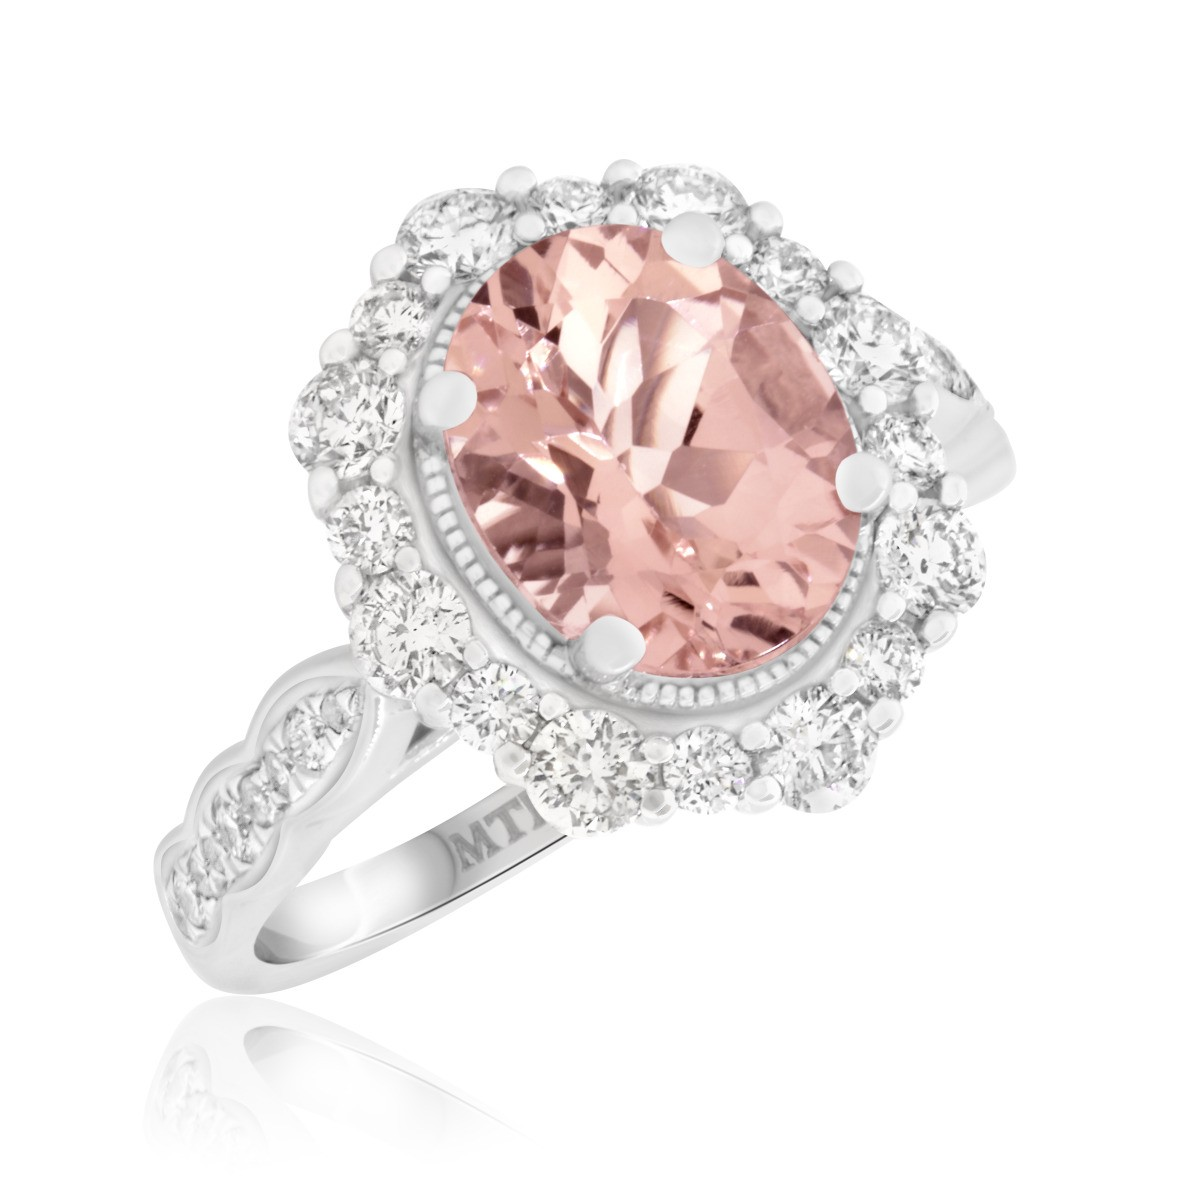 3 CT. T.W. Morganite and Diamond Engagement Ring 14K White Gold